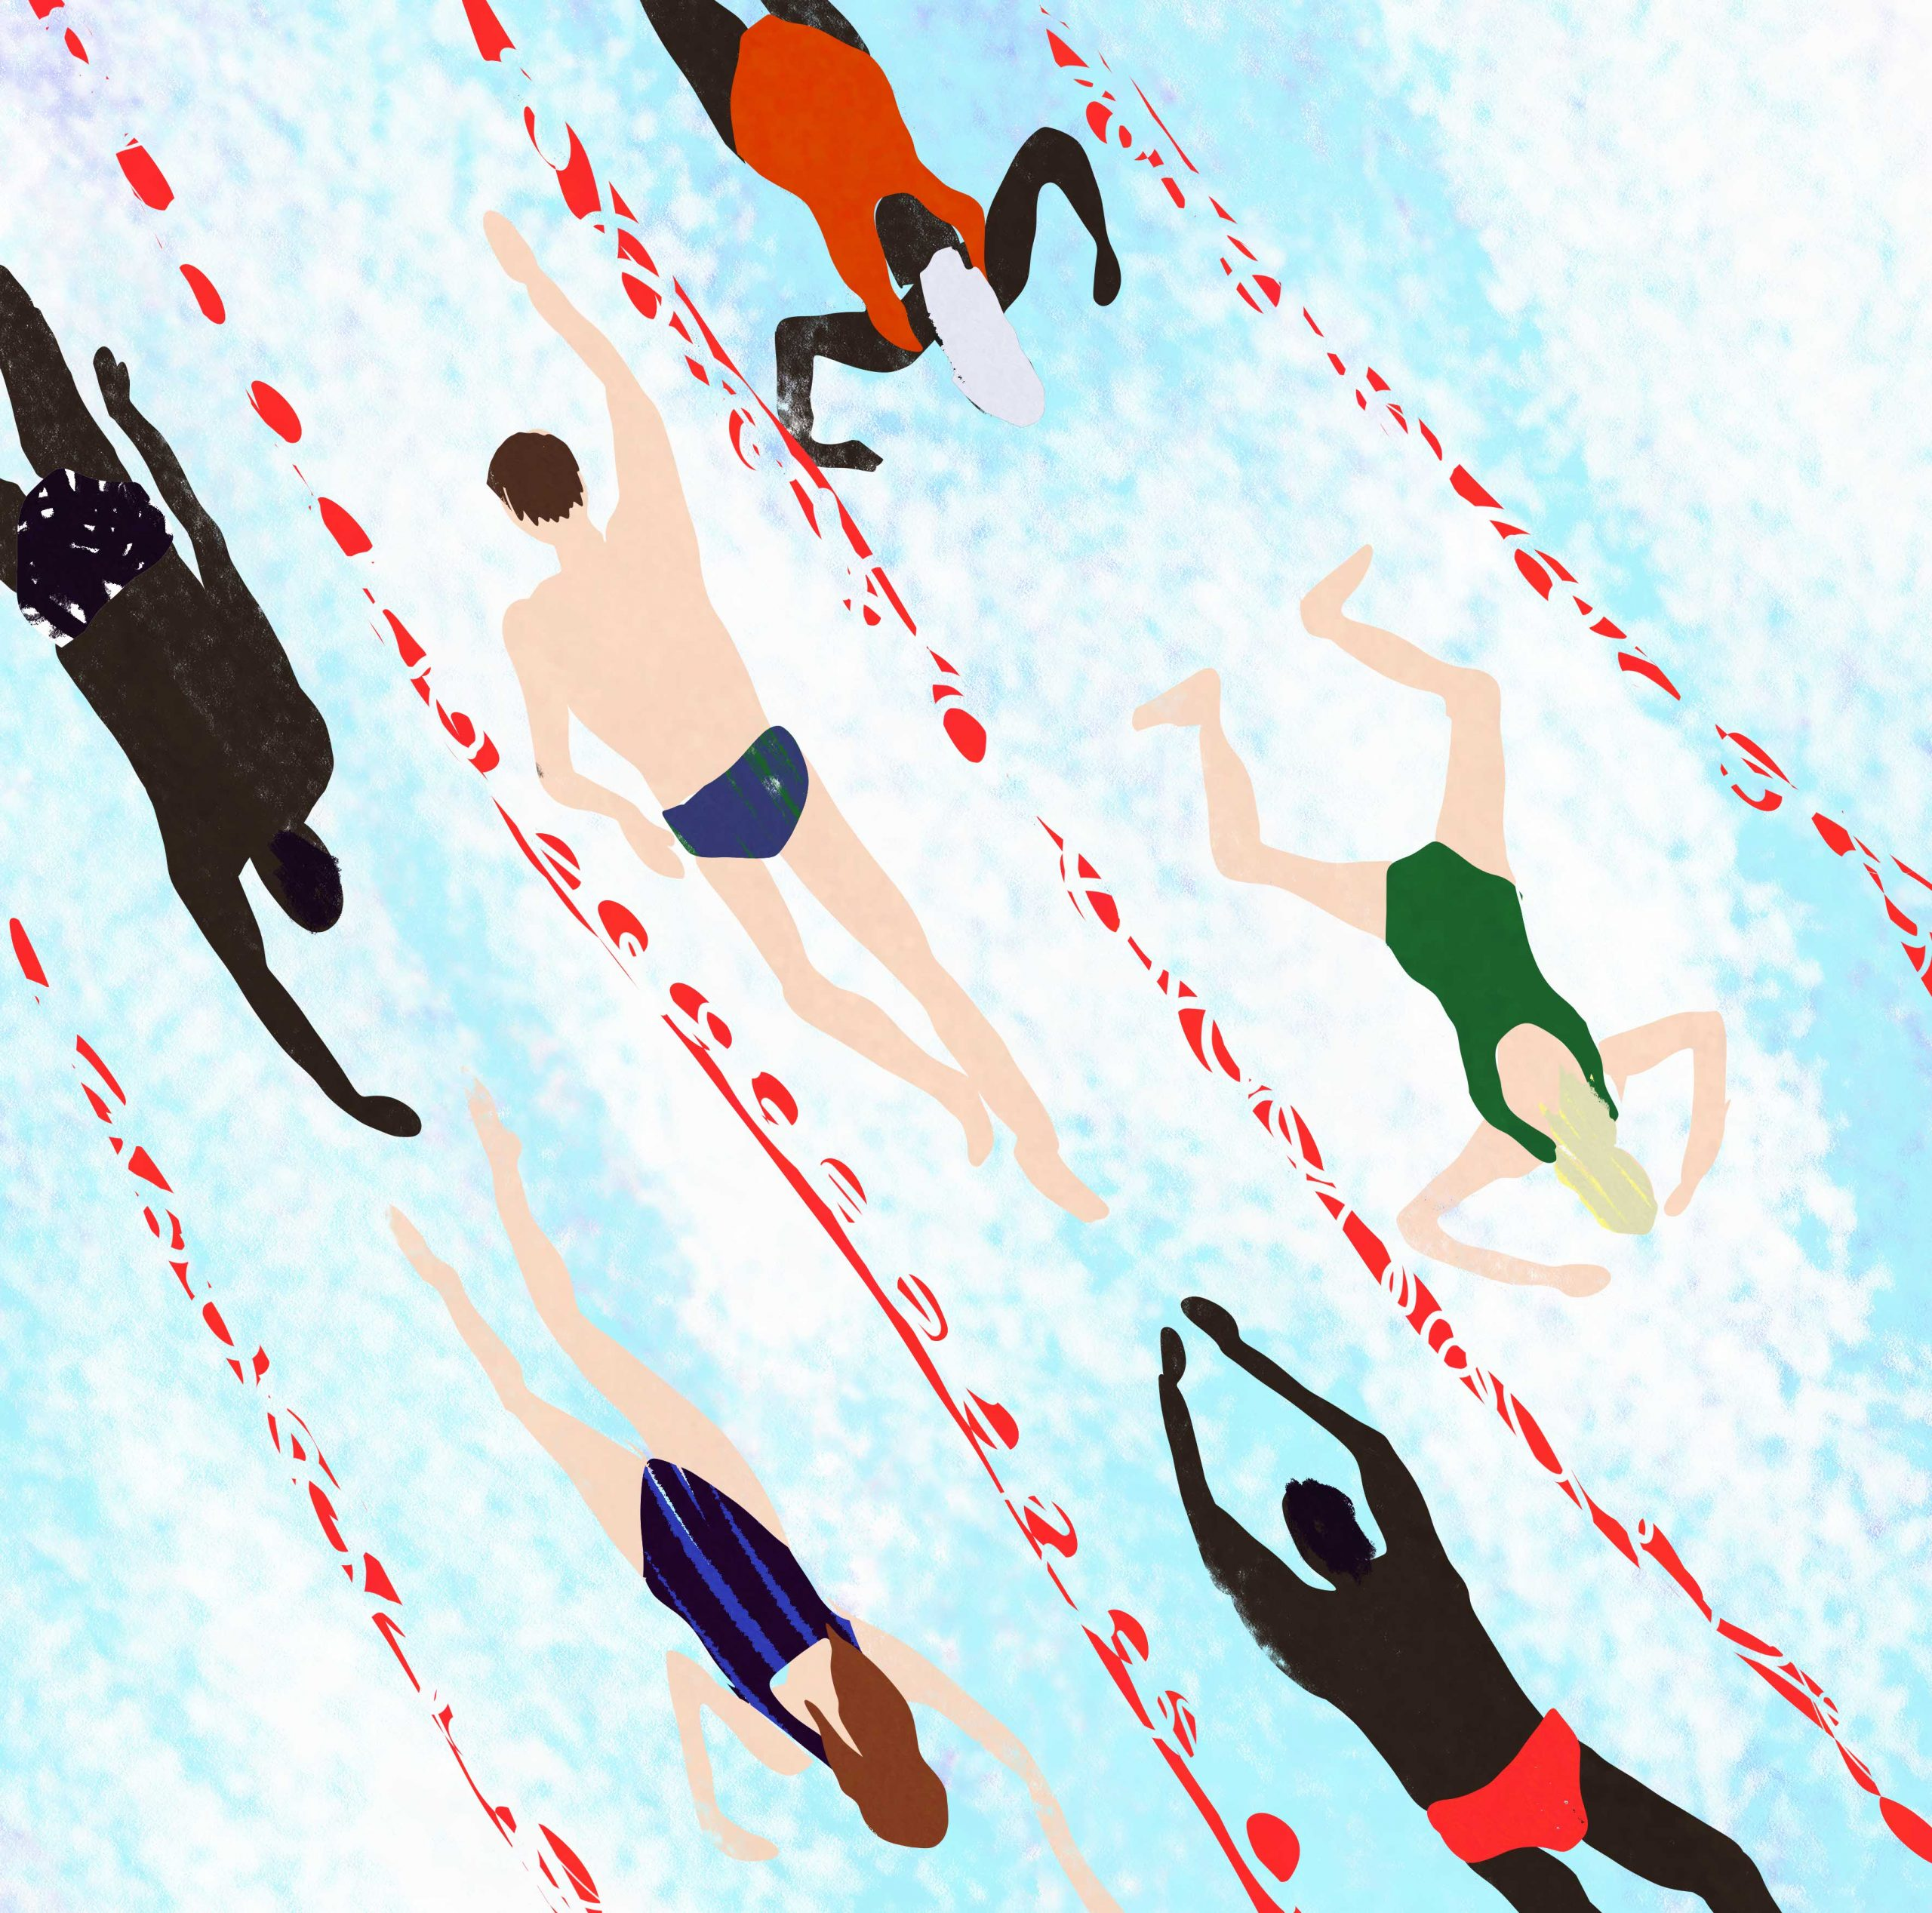 editorial illustration of people swimming in a swimming pool by illustrator megan st clair